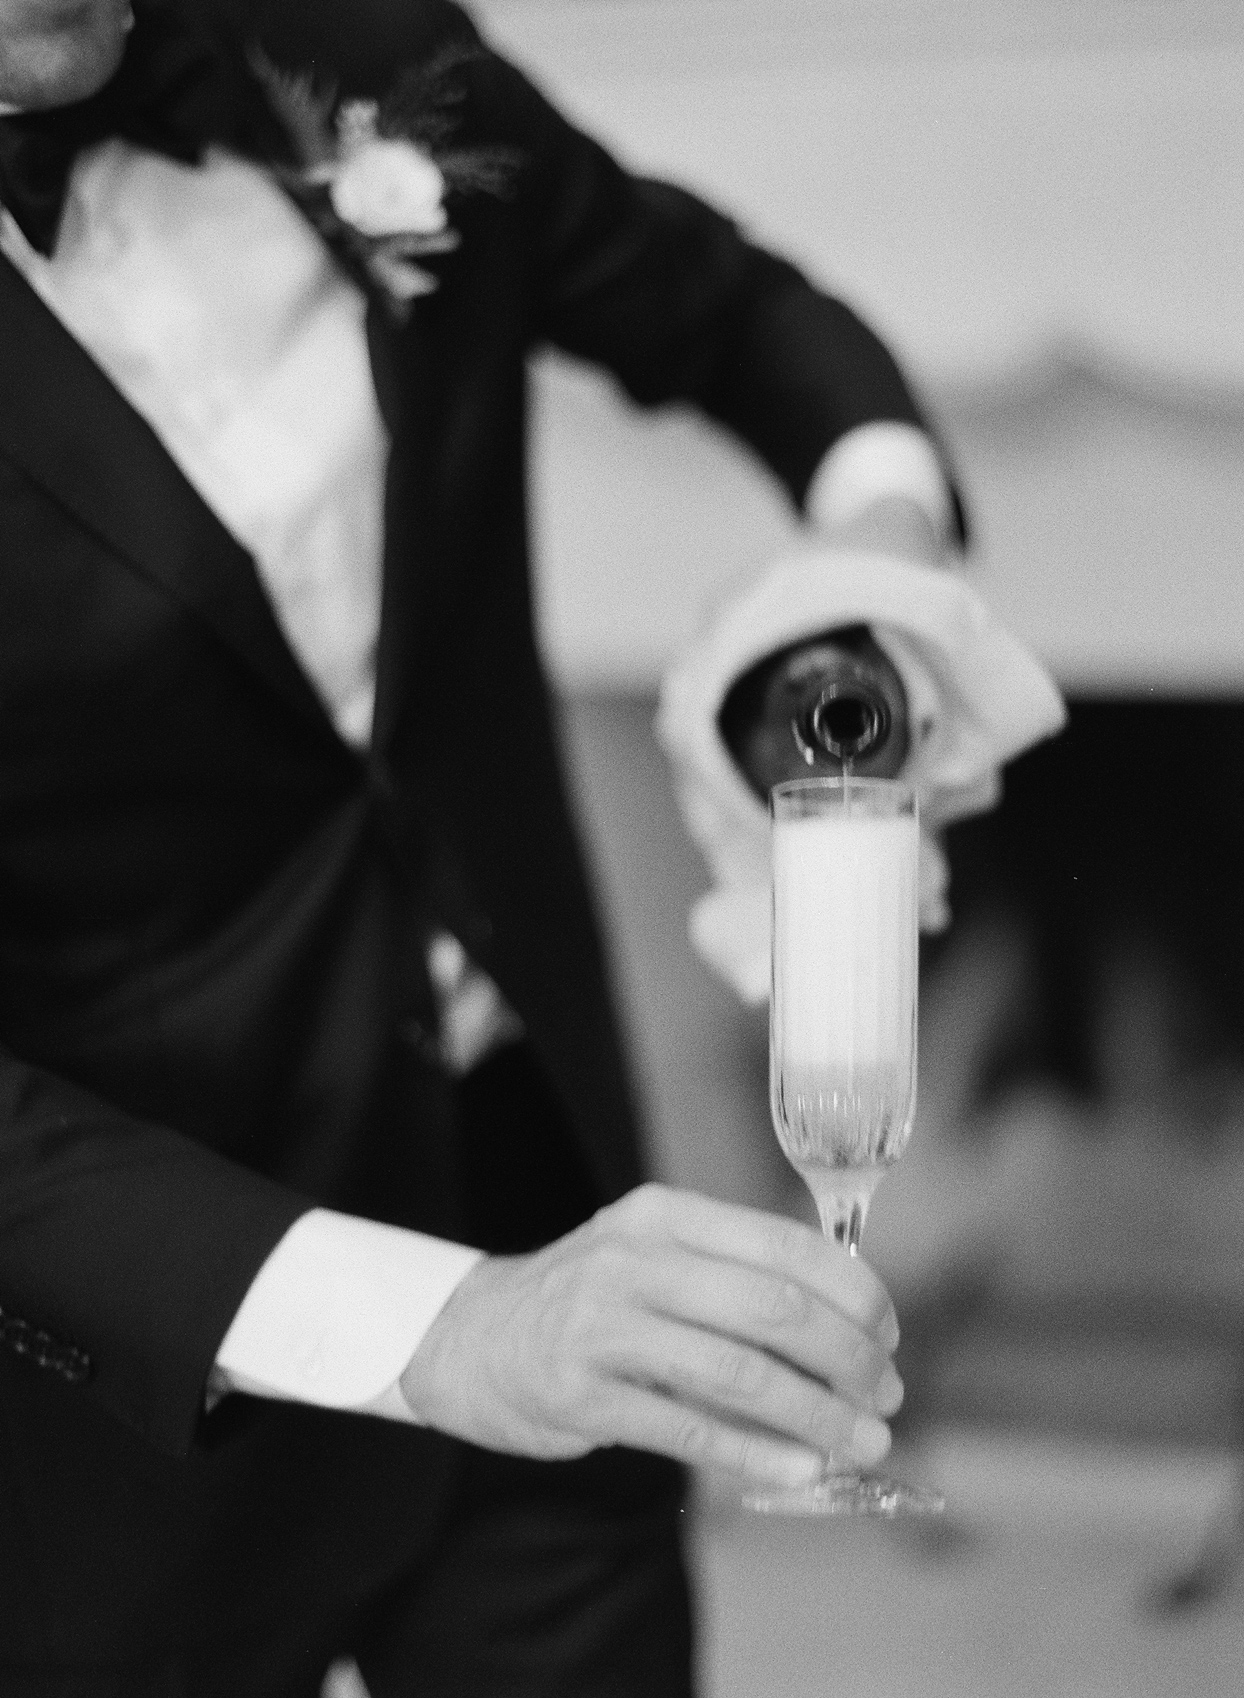 Groom pouring champagne into flute